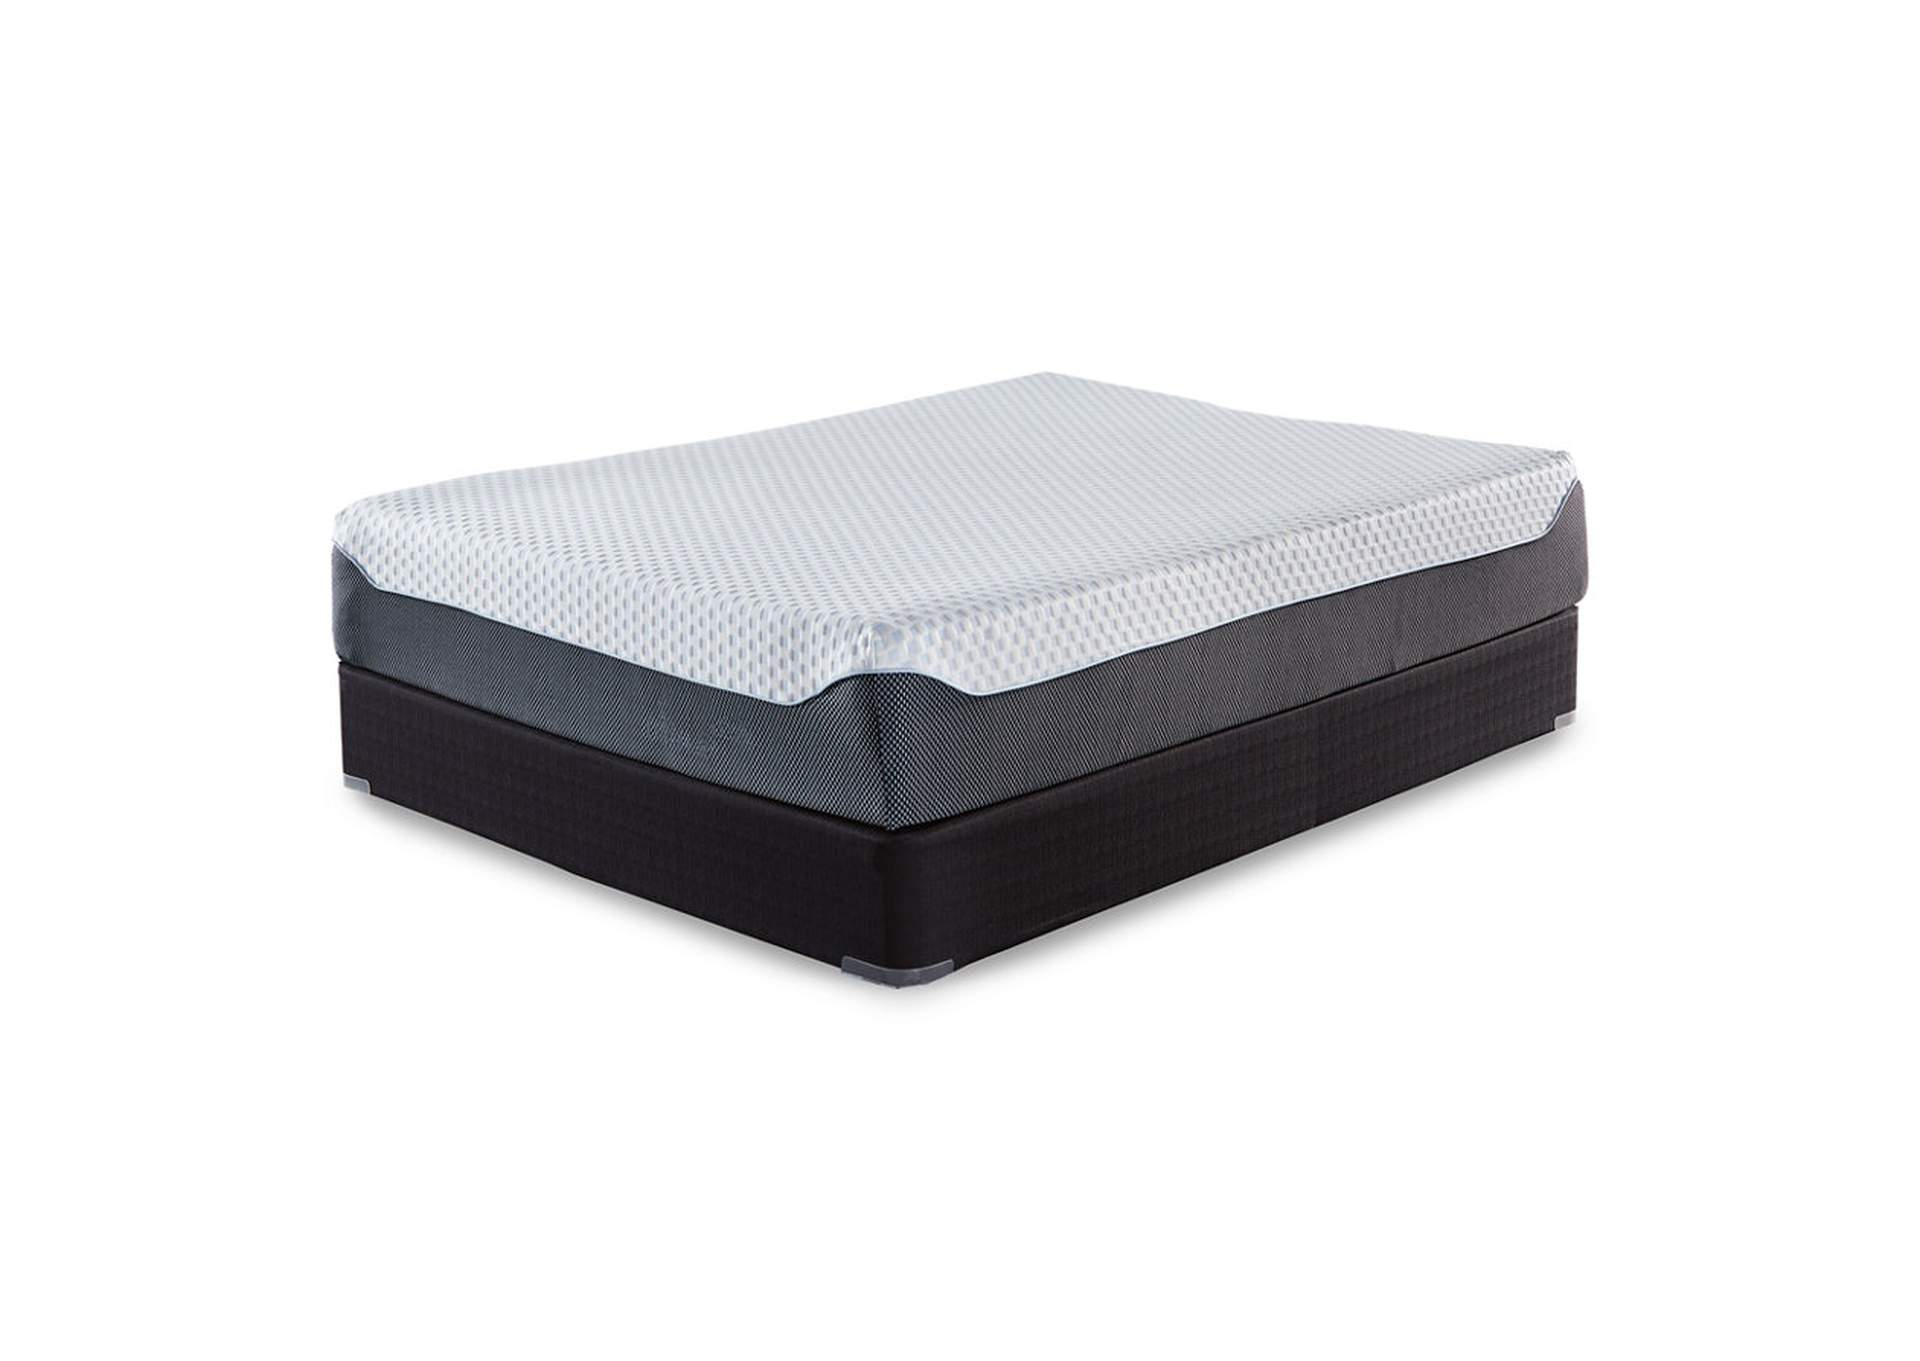 Chime Elite 12 Inch Memory Foam Twin Mattress,48 Hour Quick Ship